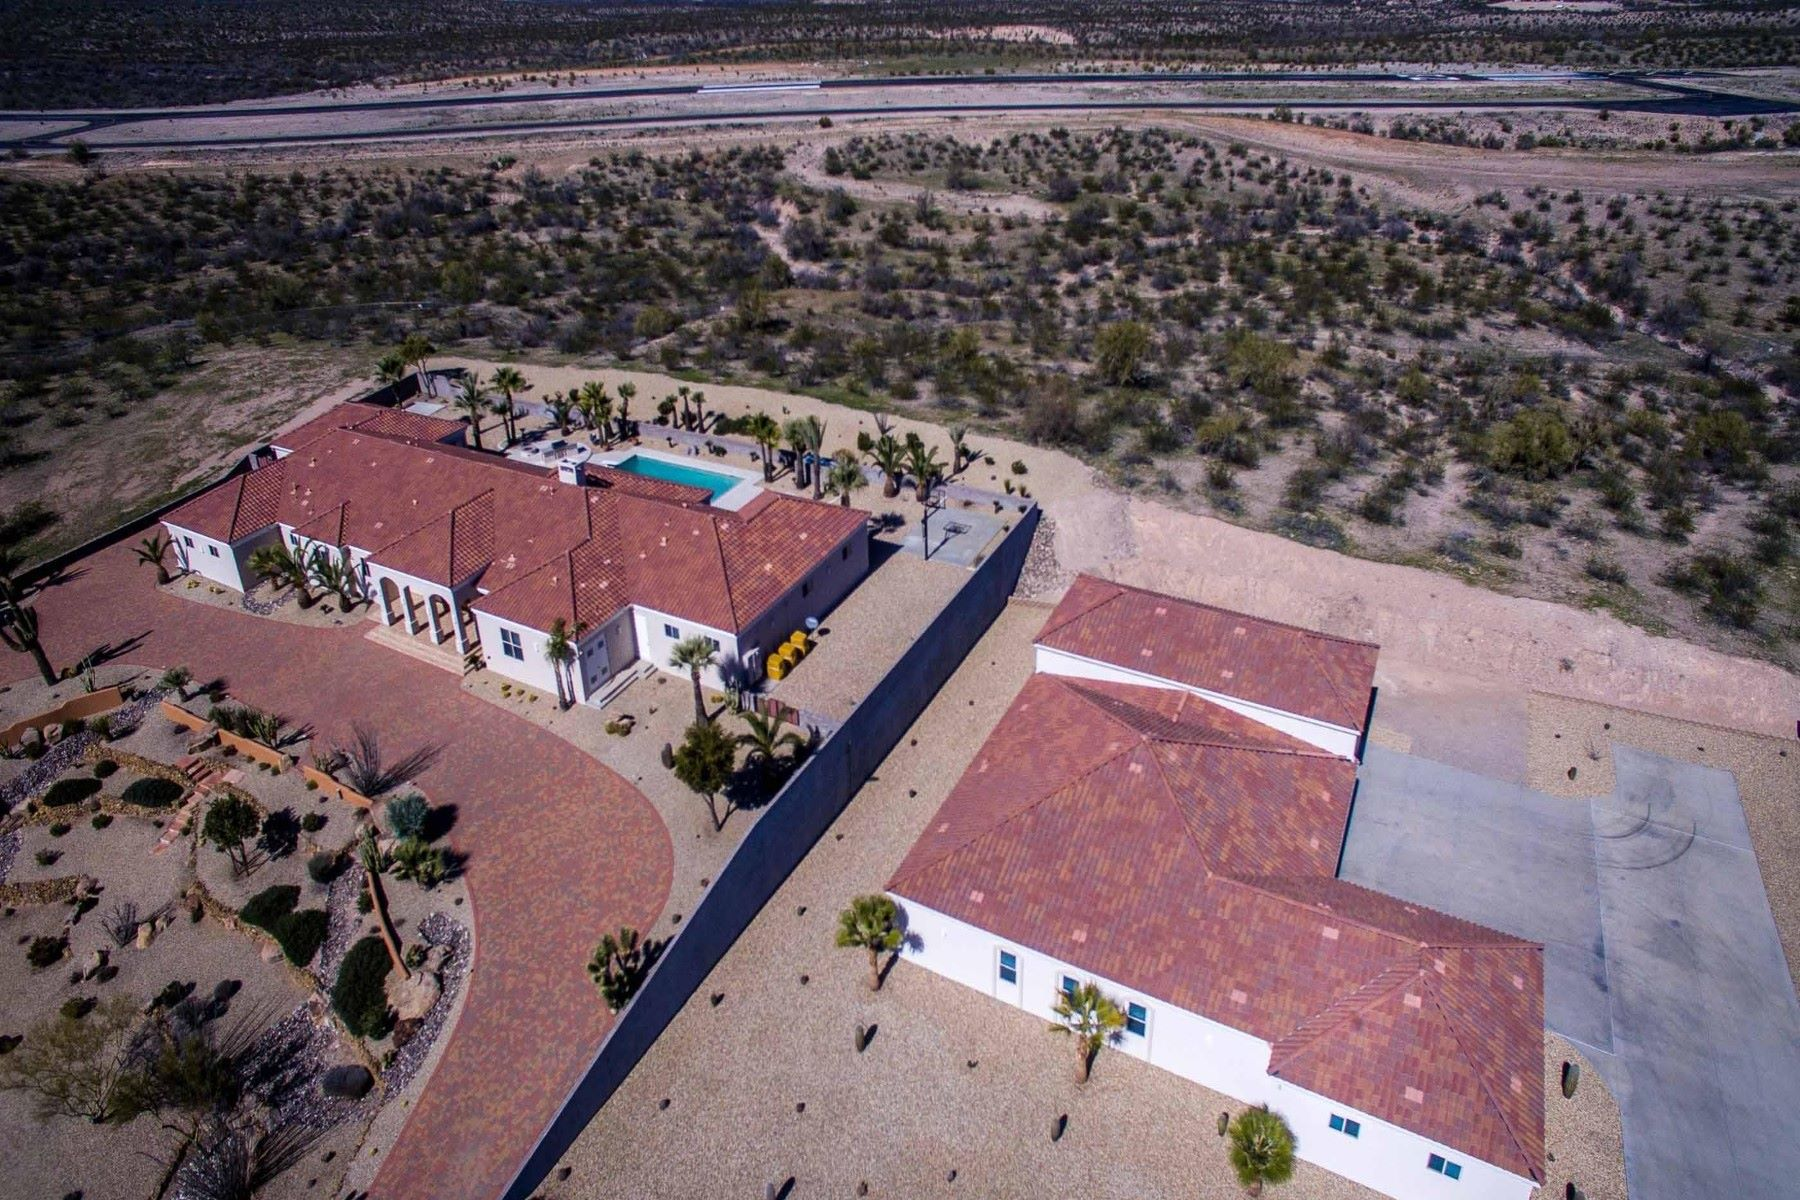 Single Family Homes for Sale at Dream Estate on the Hill 2590 W PERCHERON RD Wickenburg, Arizona 85390 United States